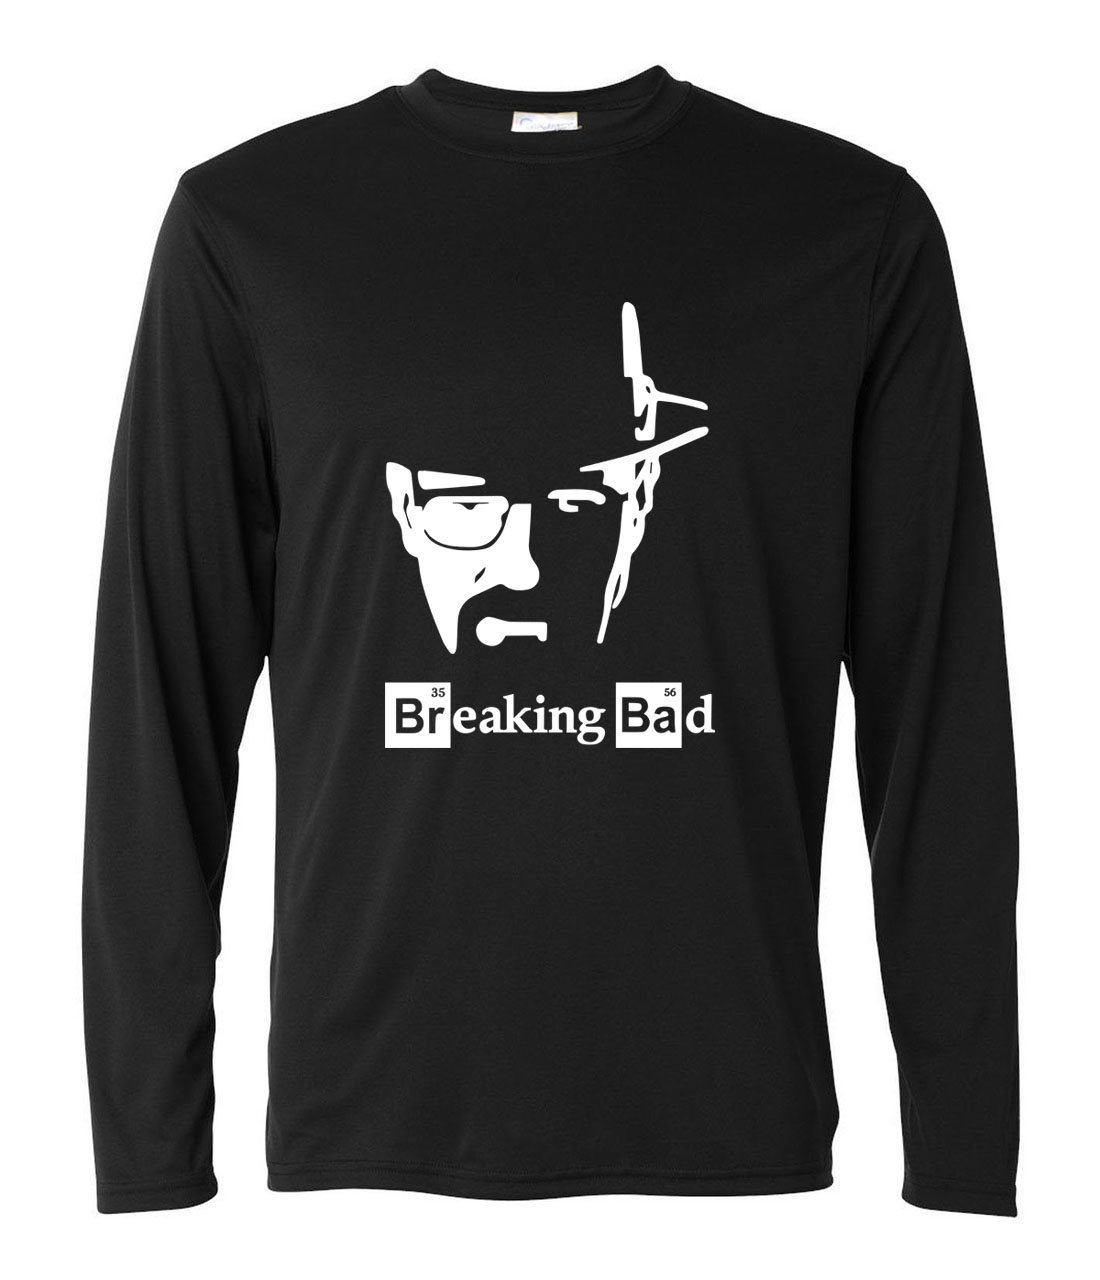 Breaking Bad T Shirt Men 2017 Walter White Cook long sleeve brand clothing new harajuku font